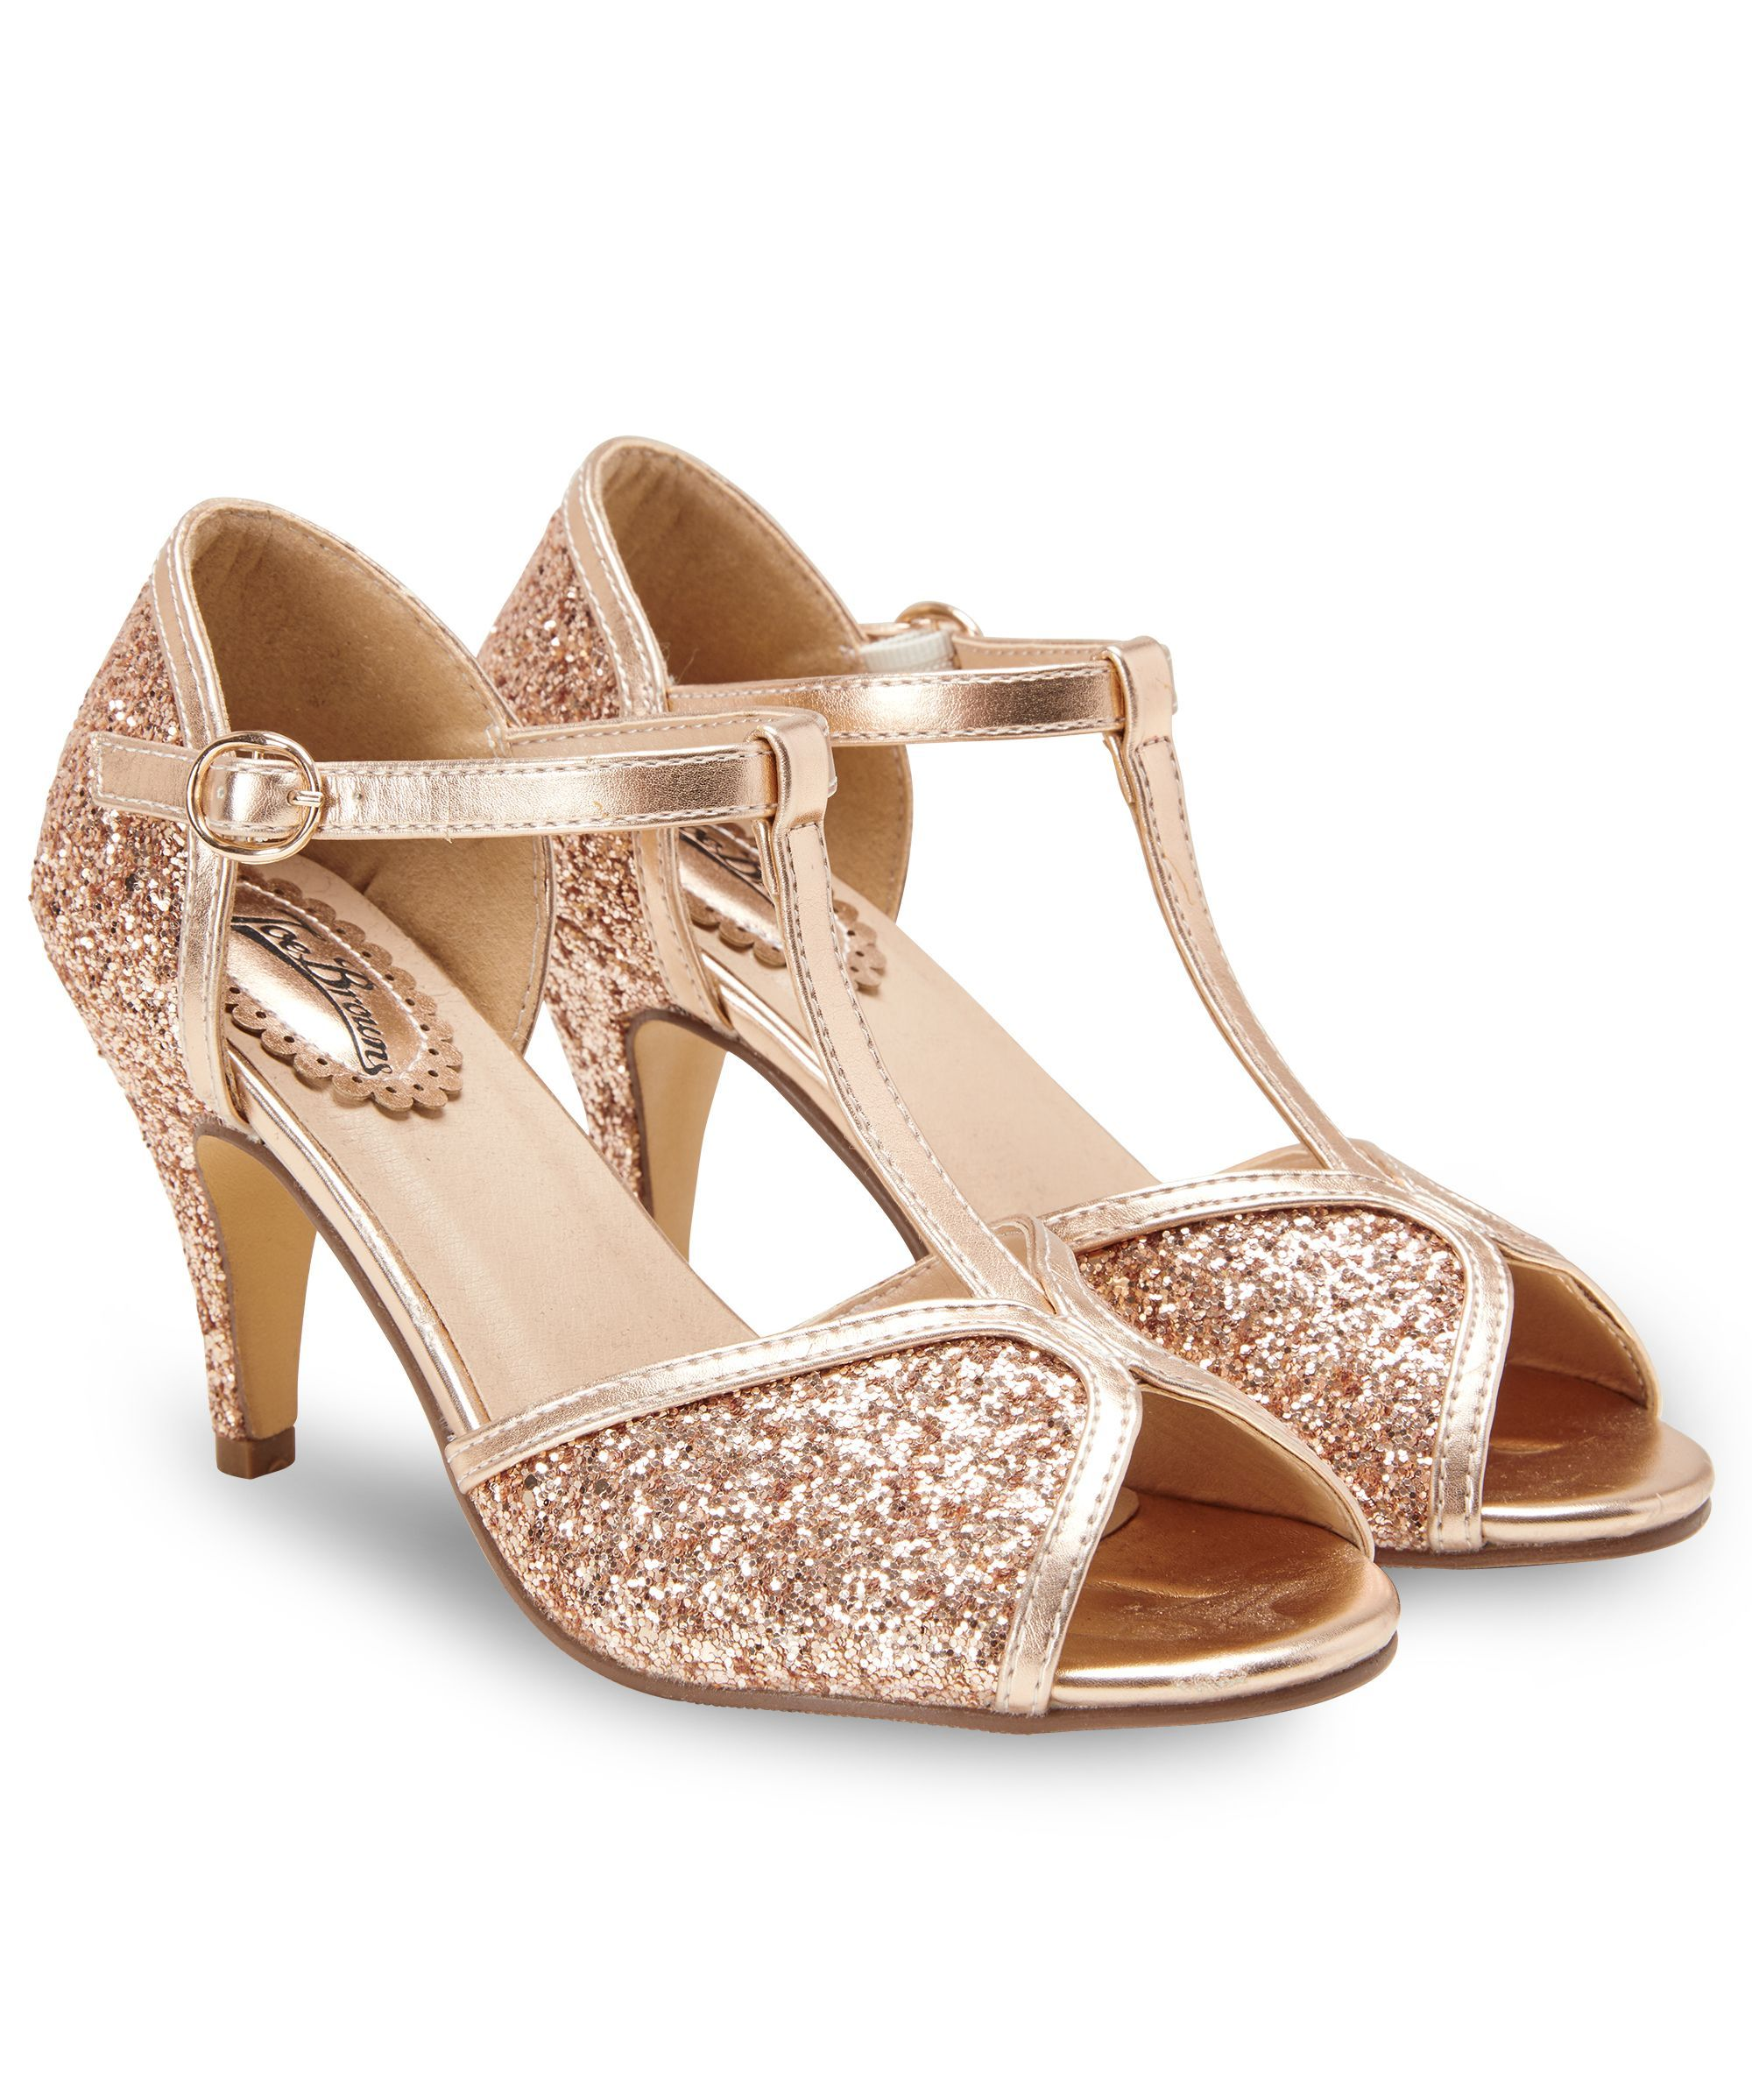 3f973831d45 Magical Evening Shoes Get the golden touch with these mesmerising T-bar  evening shoes.